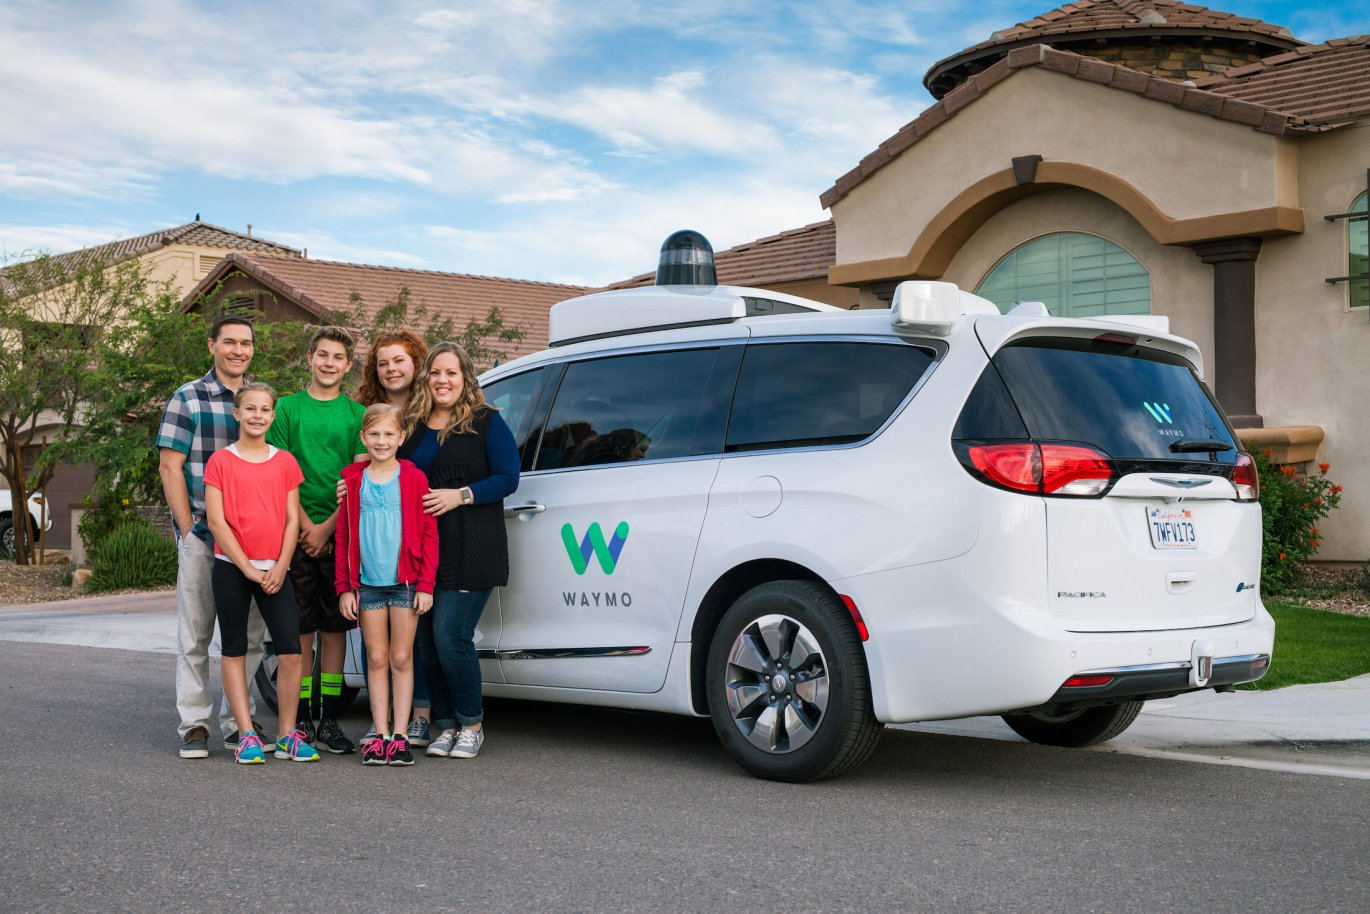 Waymo's first product will be its own on-demand ride hailing service https://t.co/5Ss6miEHG4 https://t.co/PL2hBnx6nj